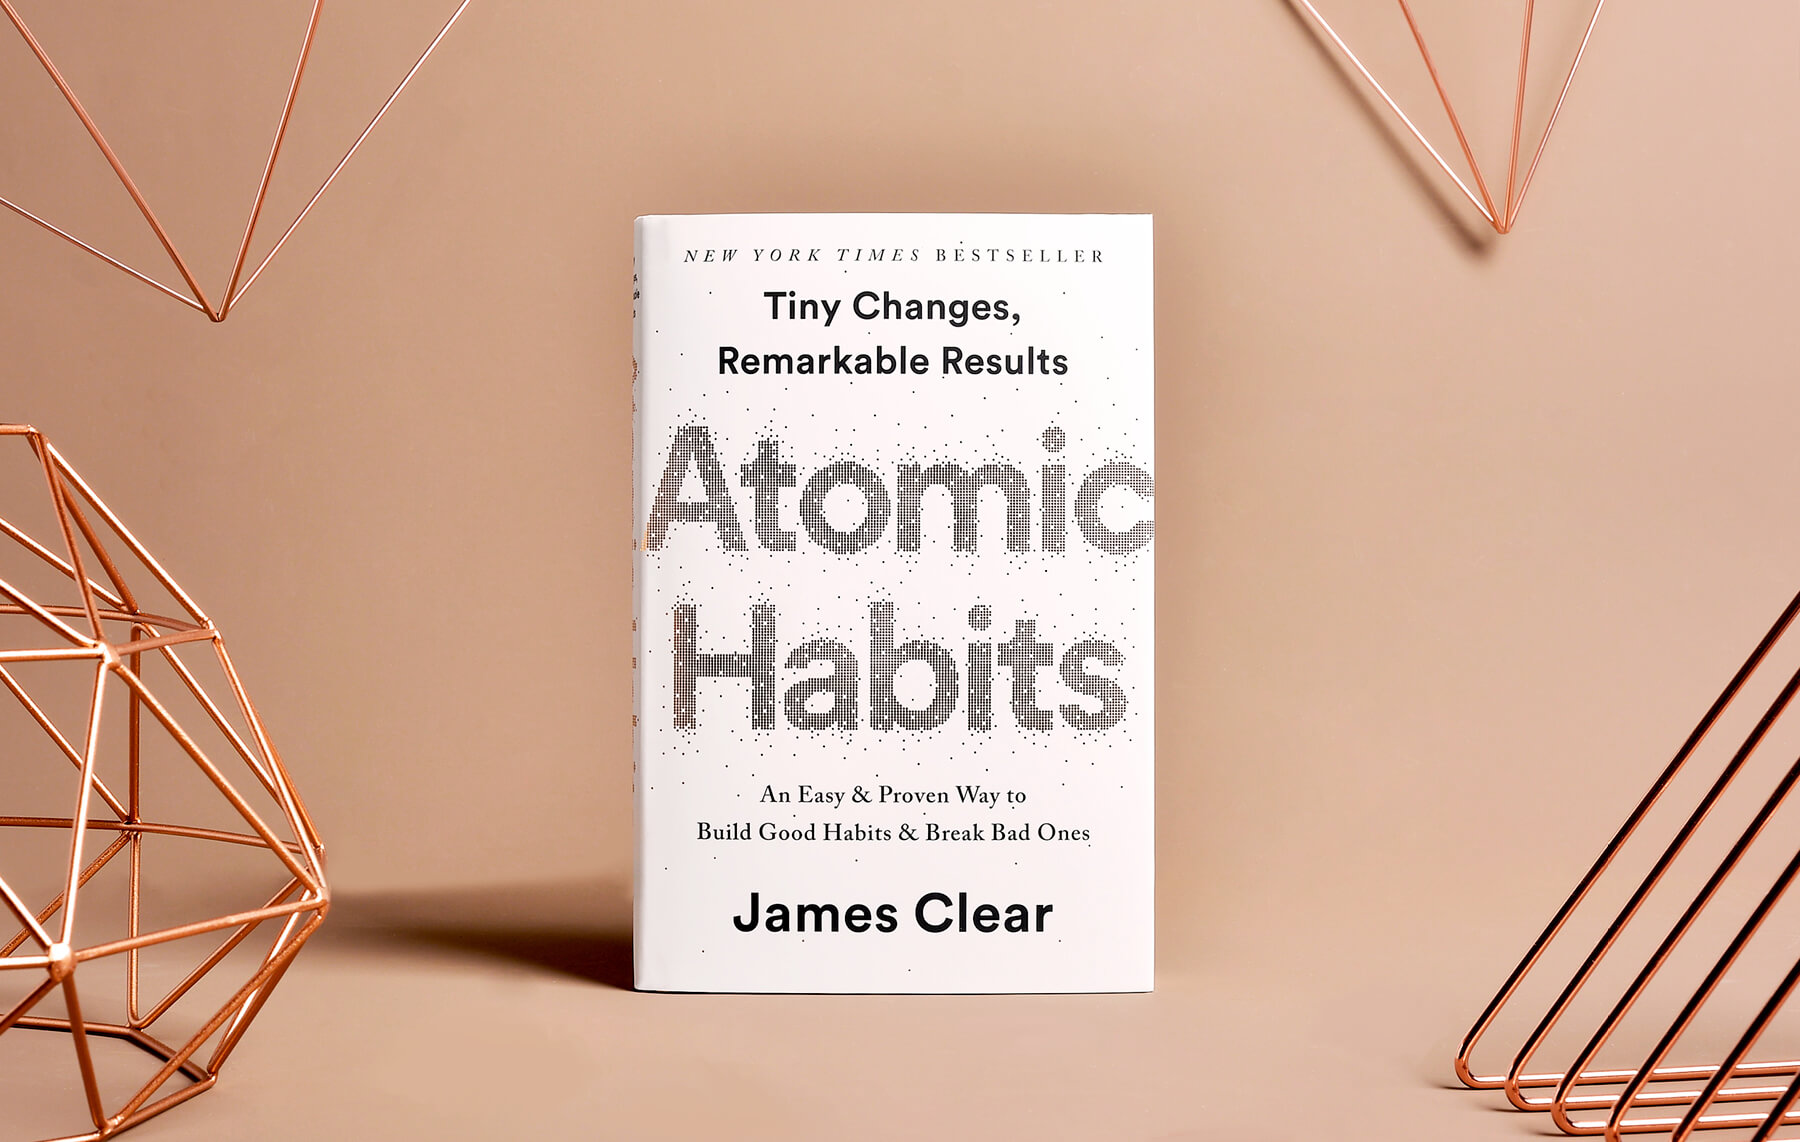 Atomic Habits: Tiny Changes, Remarkable Results by James Clear